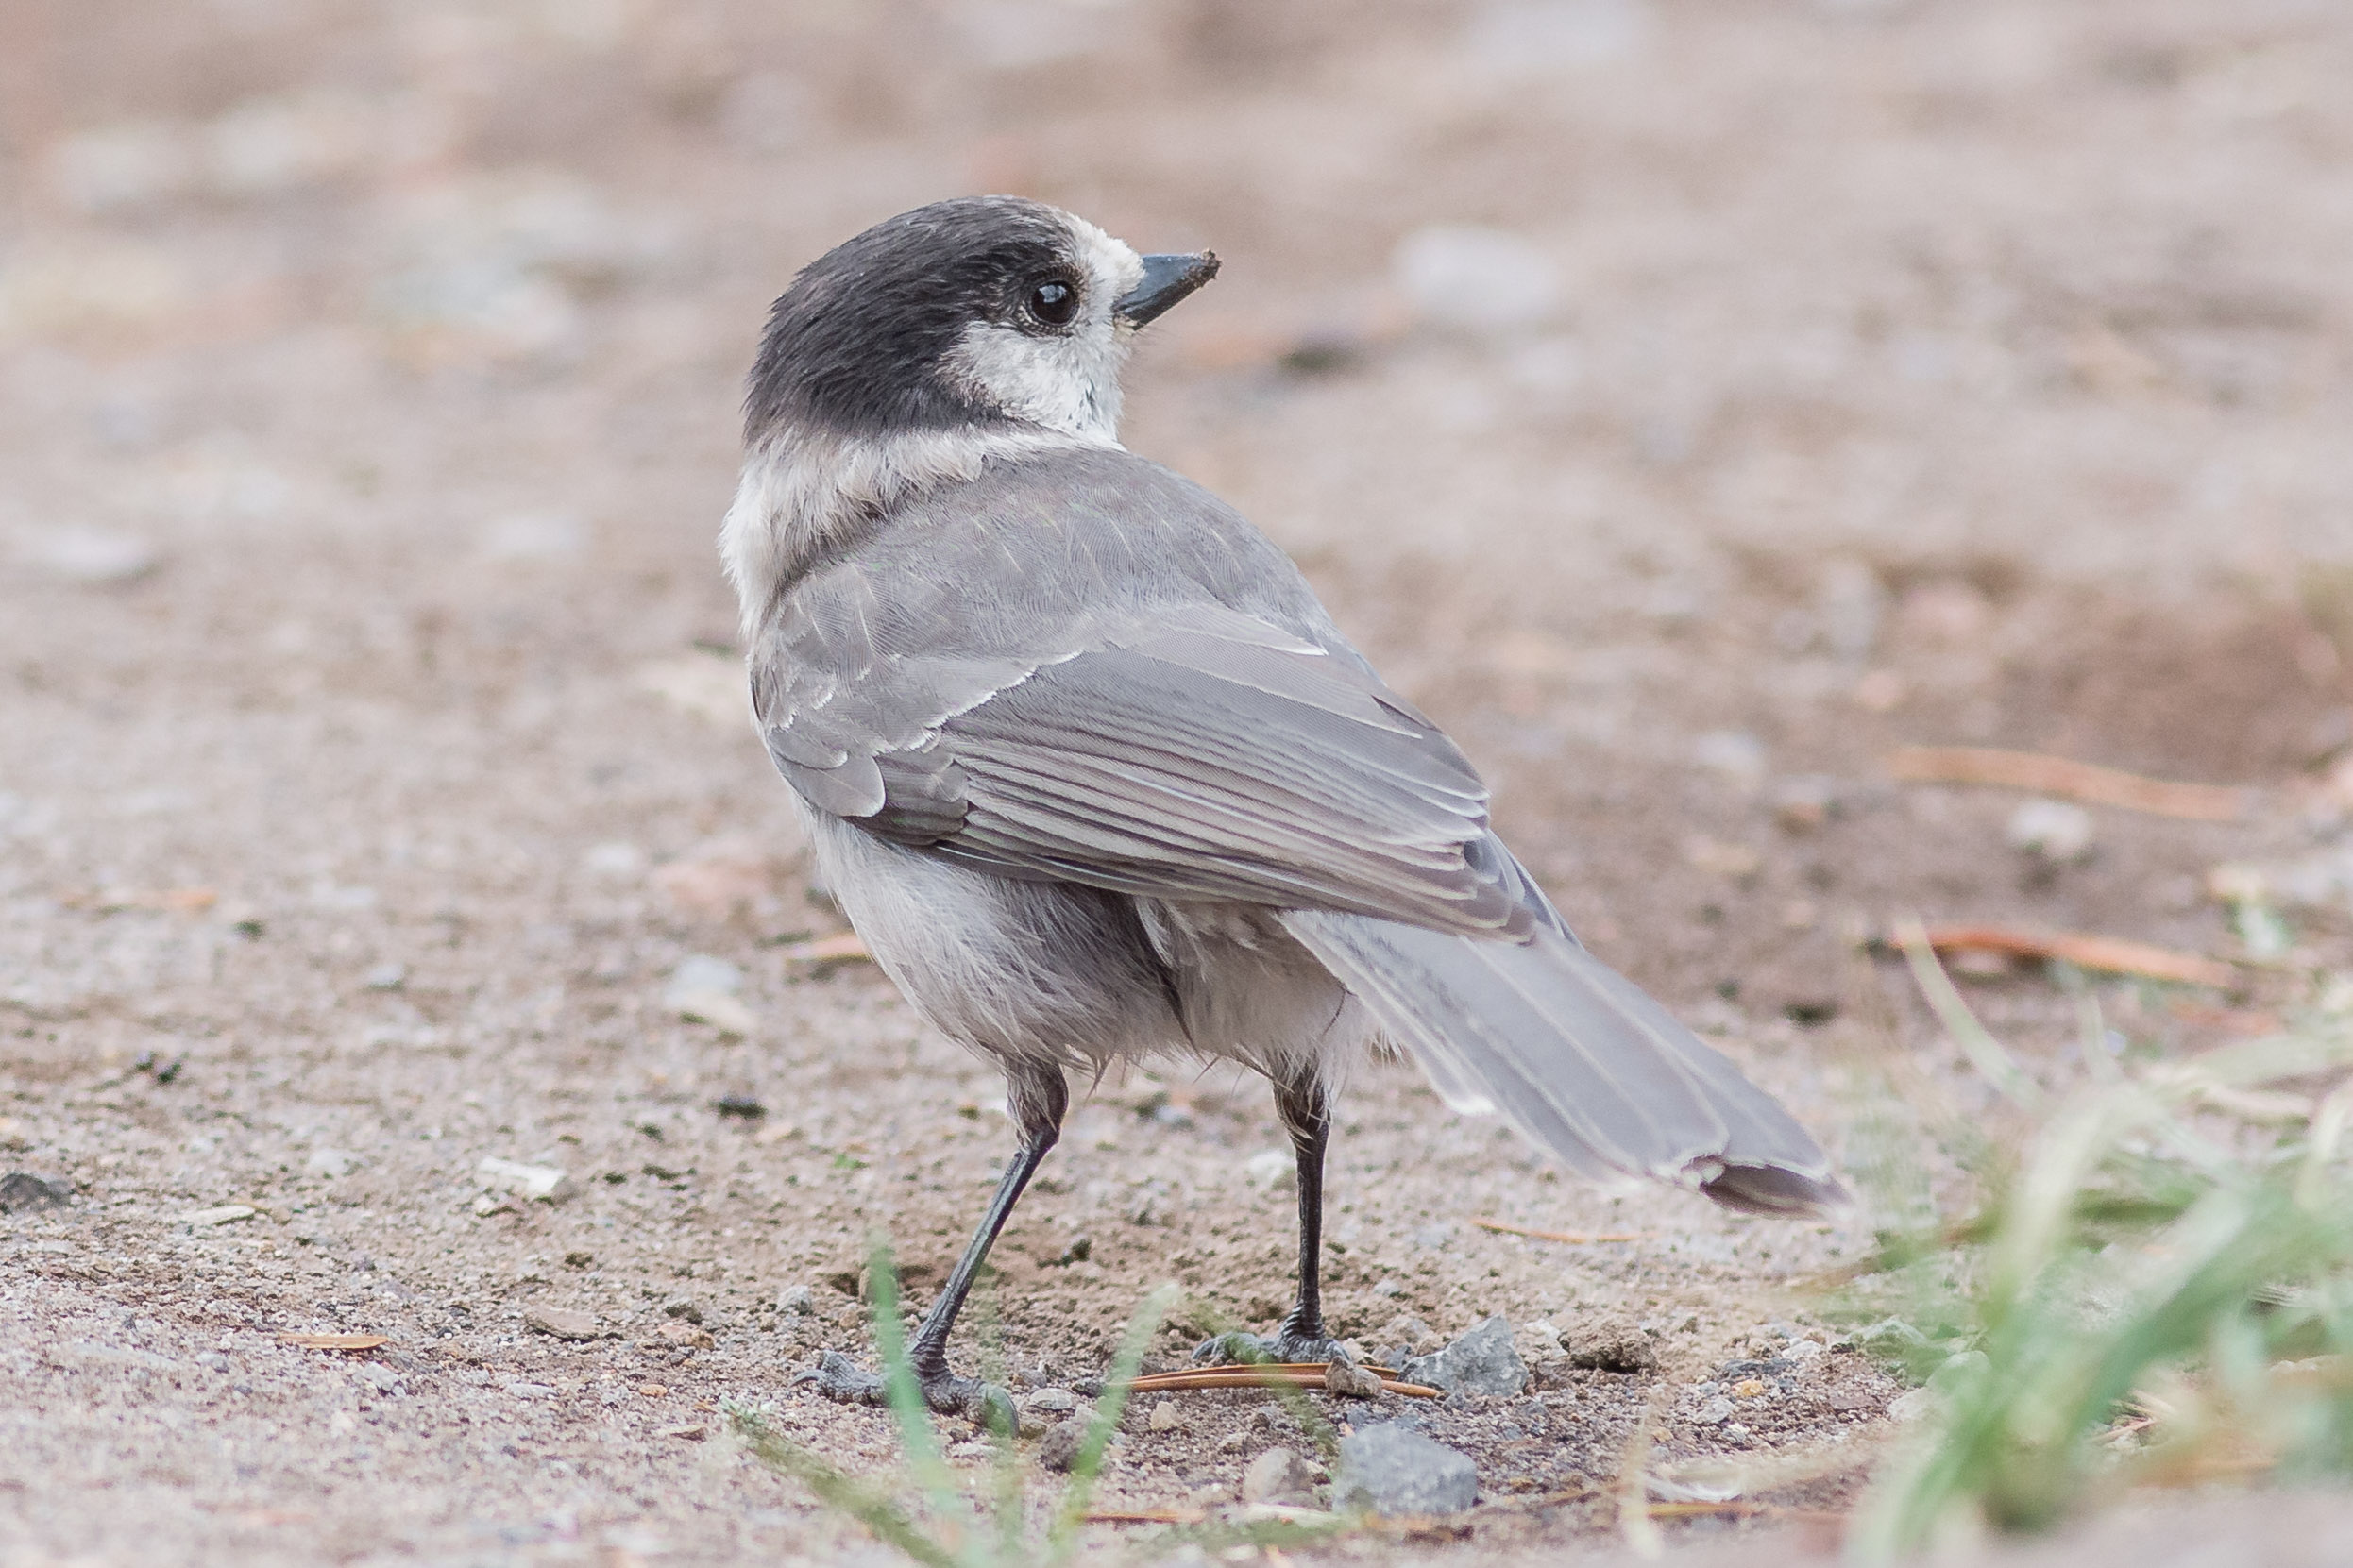 Gray Jay (Perisoreus canadensis) - Crater Lake NP , Klamath Co. (OR)  EQ: D7200, 300mm f/2.8  Taken: 10-1-2016 at 13:08   Settings: 450 mm (35mm eqiv), 1/1000s, f/3.5, ISO640, +1/3EV  Conditions: Foggy light drizzle